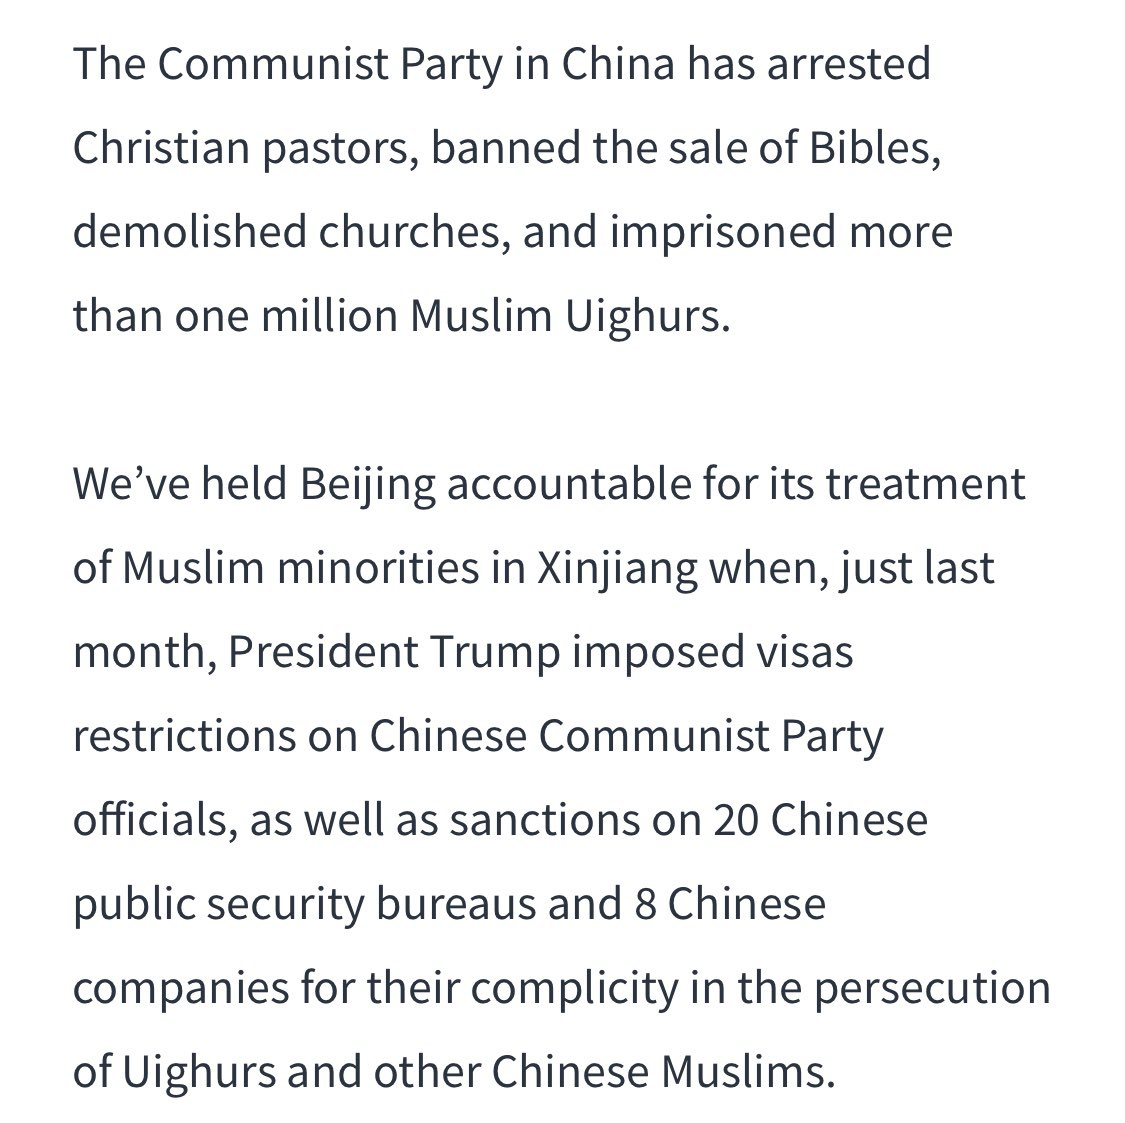 .@VP spoke out about this oppression in his October 24 speech on China: twitter.com/austinramzy/st…